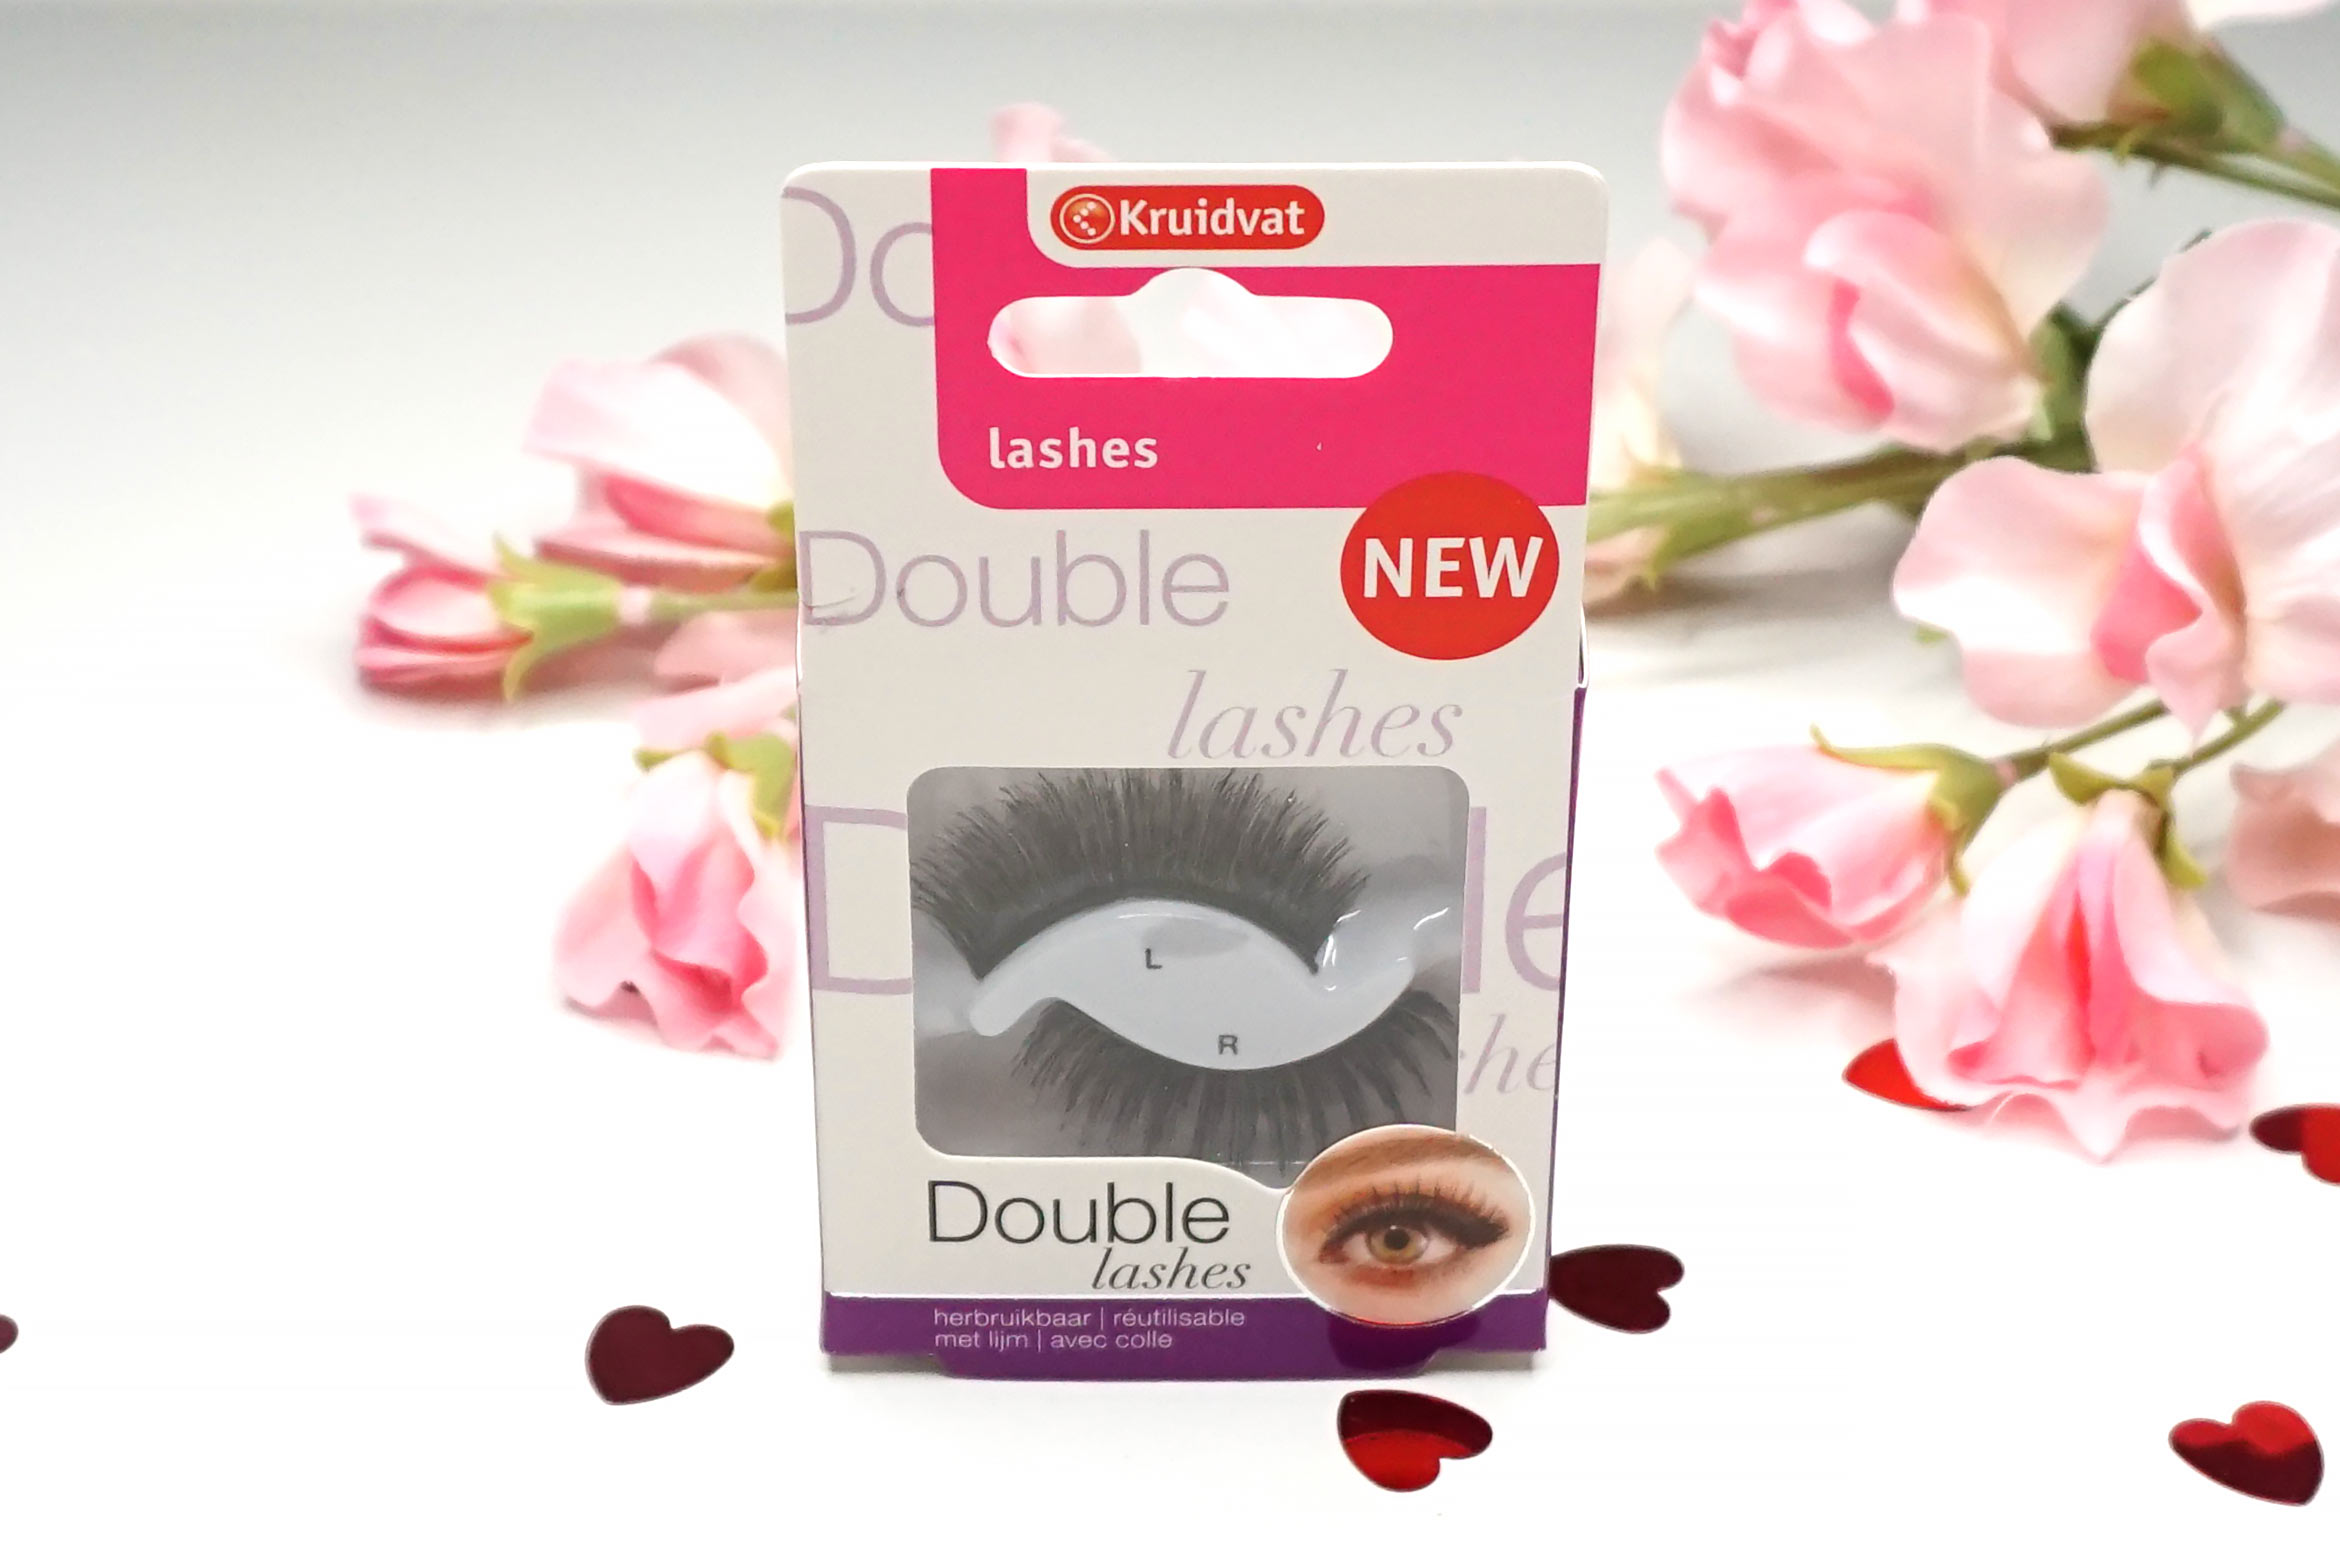 kruidvat-double-lashes-review